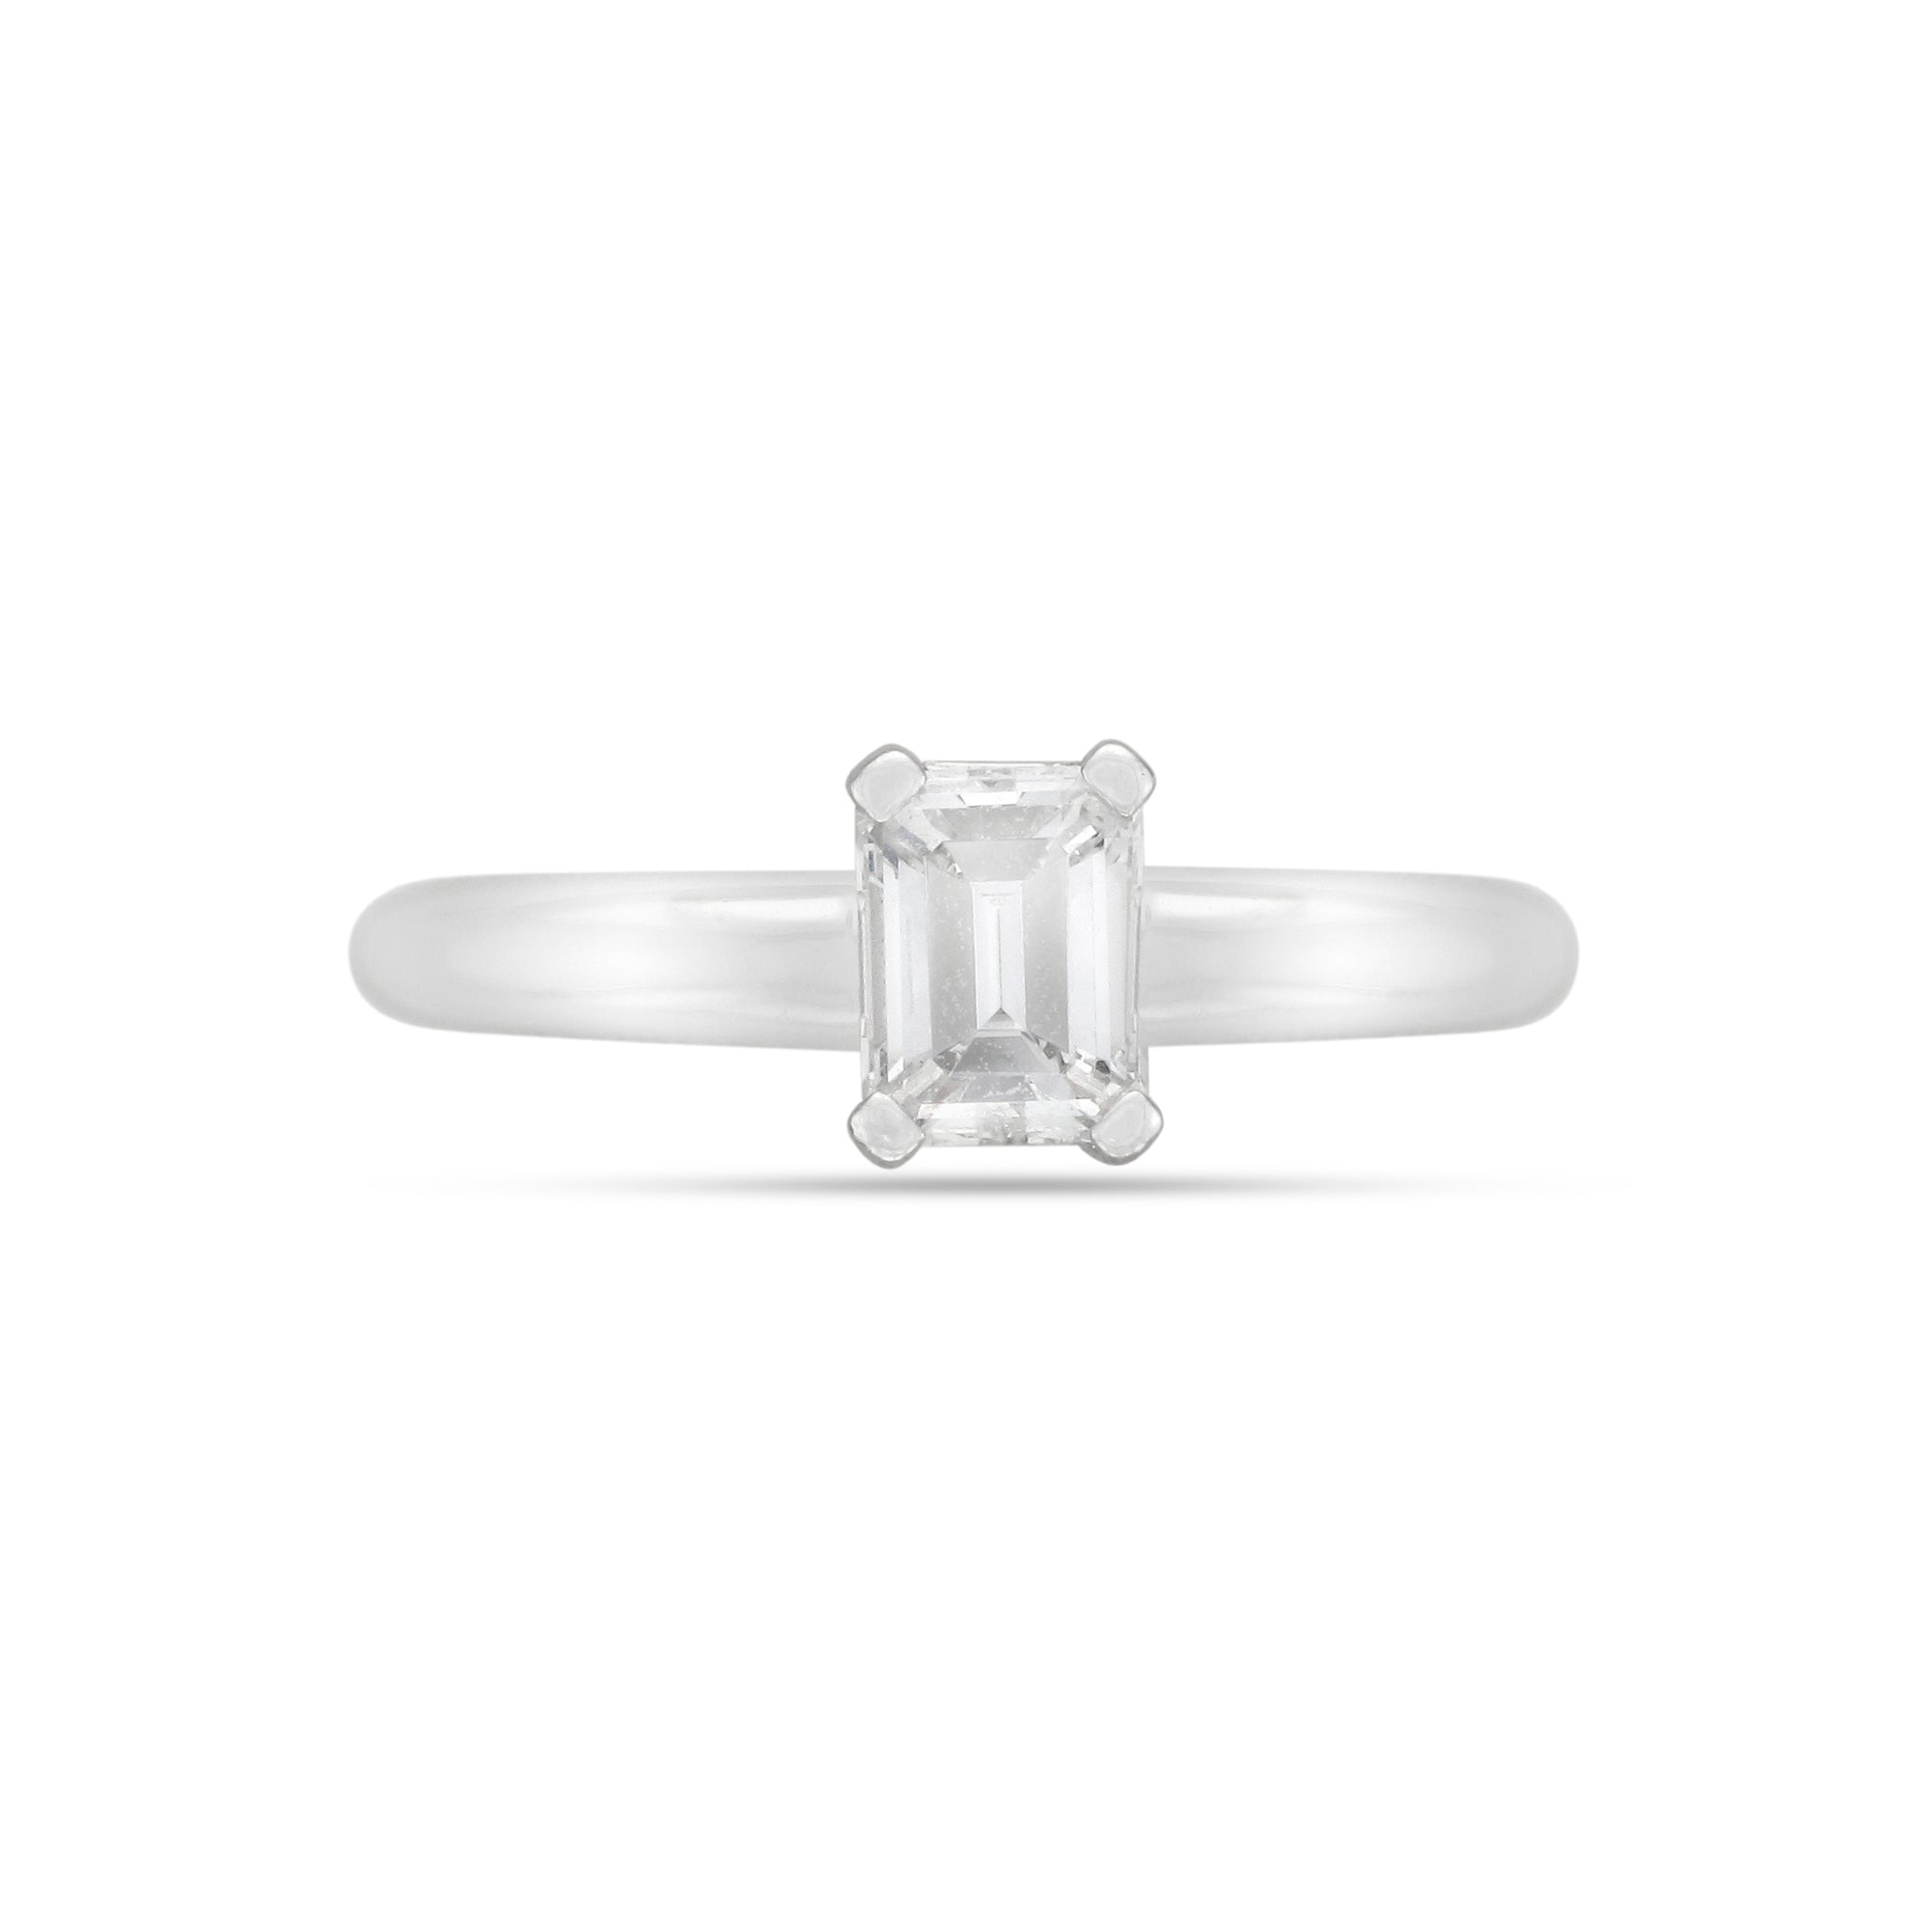 0.73ct Emerald-Cut Solitaire Diamond Engagement Ring